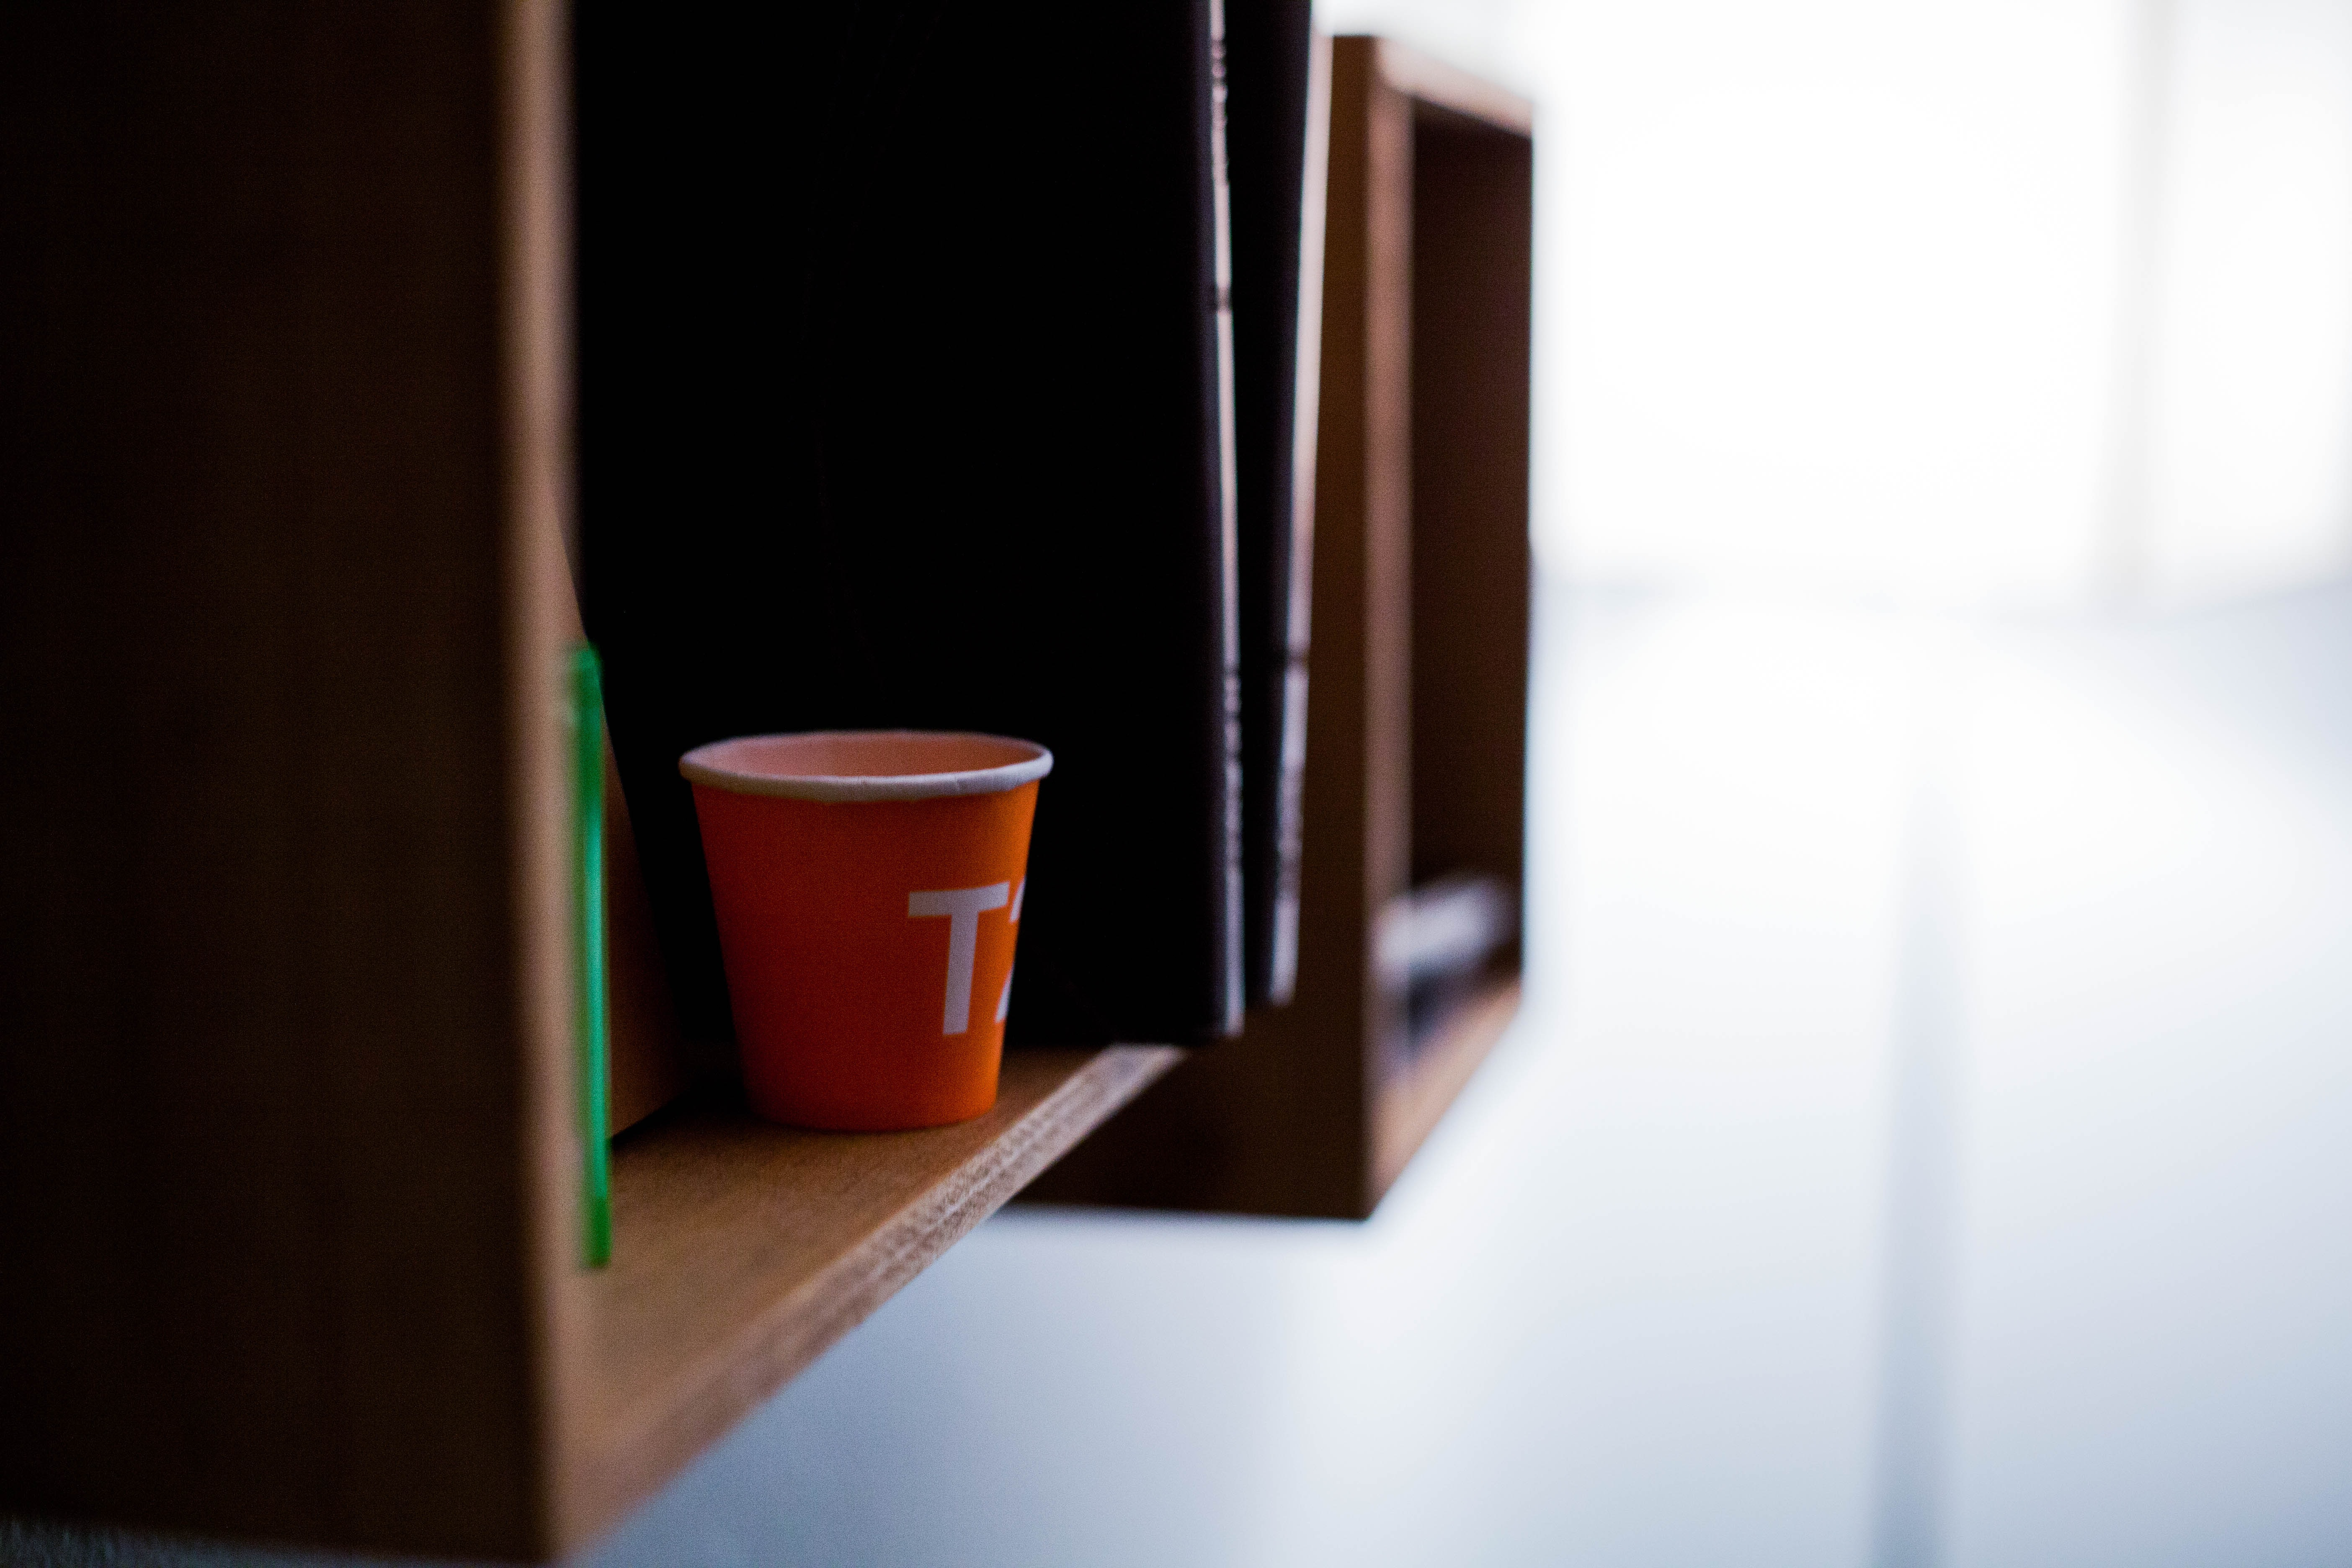 Orange T cup on a wood bookshelf at home